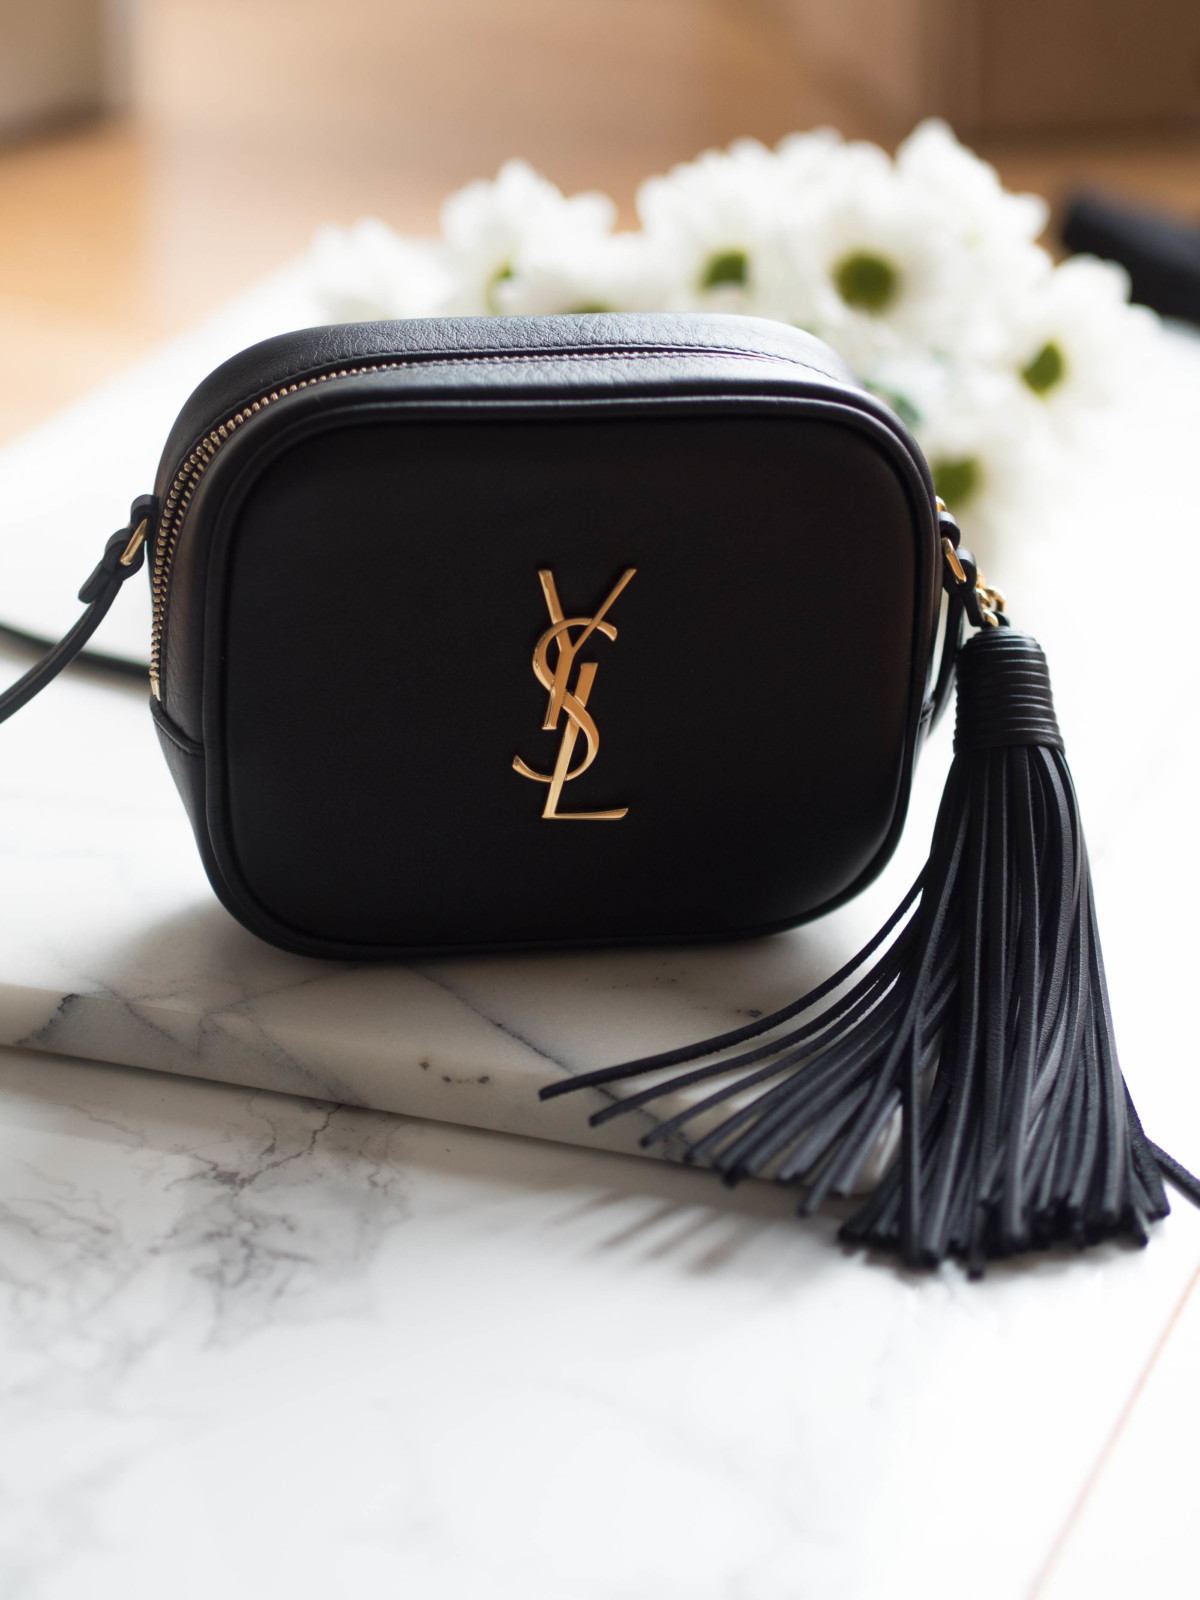 The Ysl Blogger Bag And How I Nabbed It On A Major